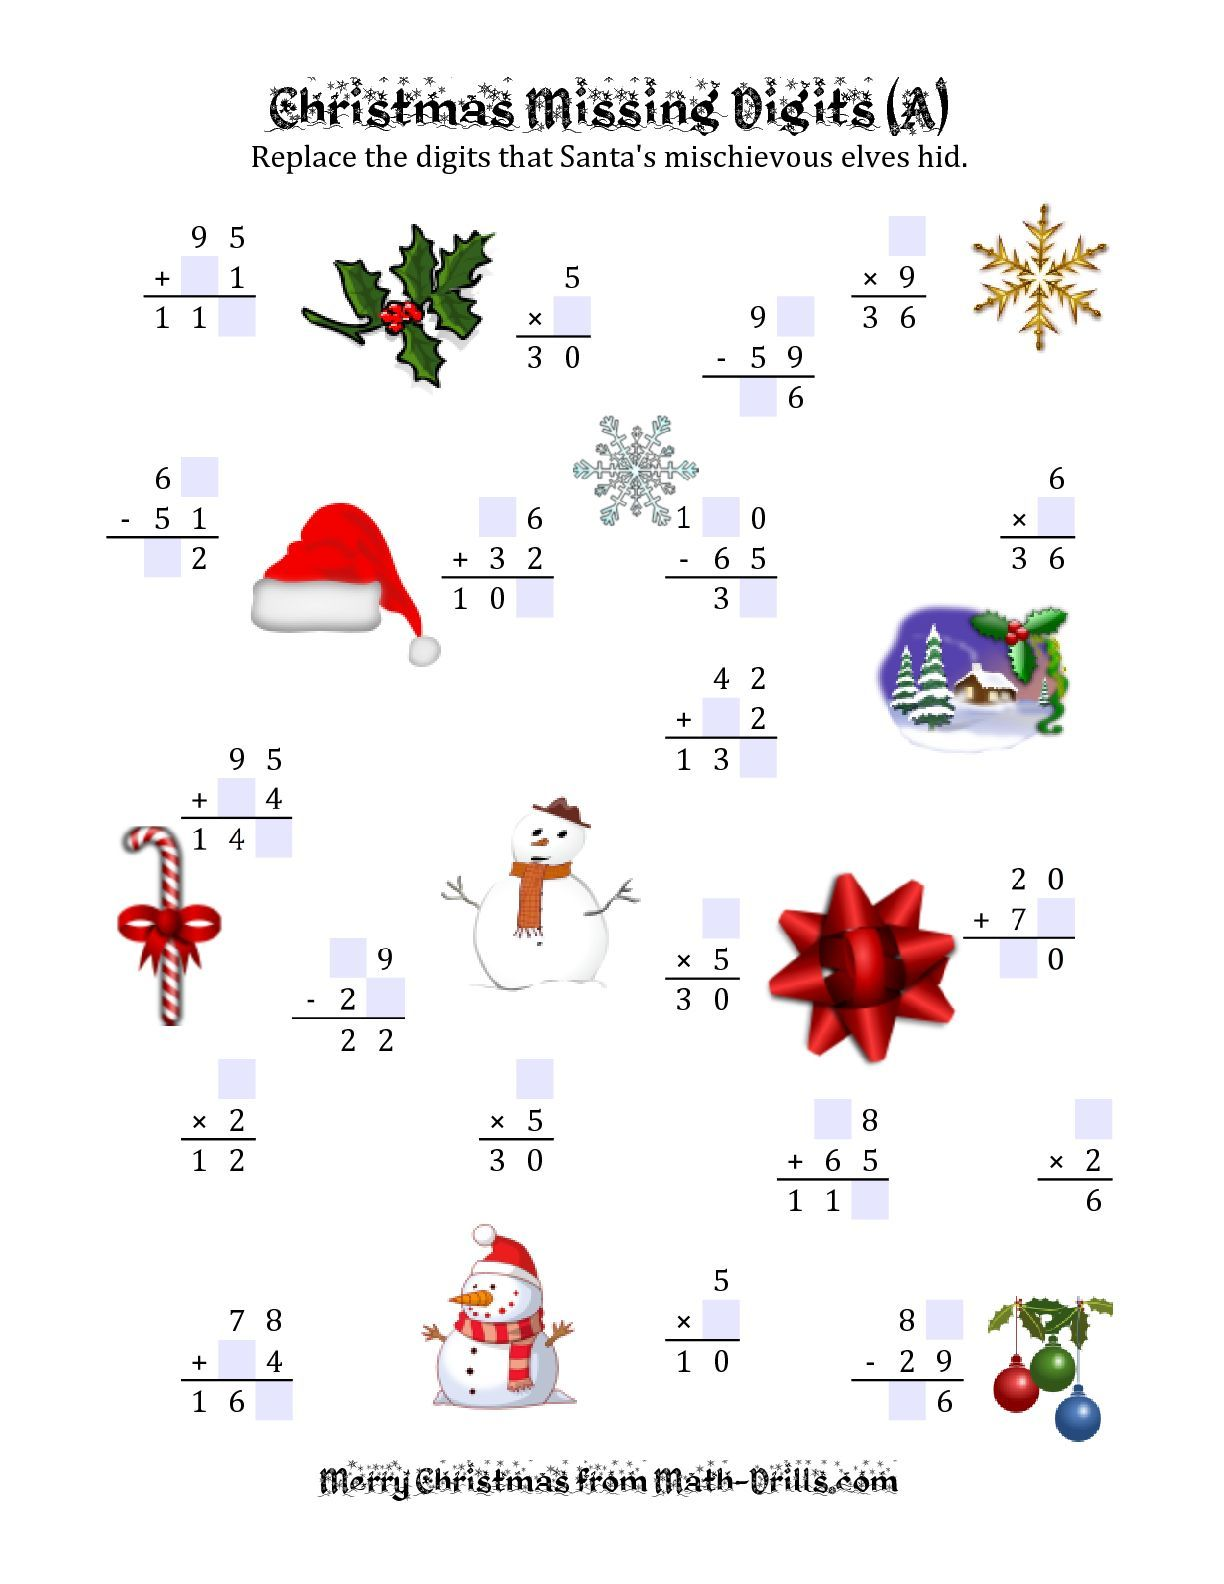 The Christmas Missing Digits A Math Worksheet From The Christmas Math Worksheet Page At Math